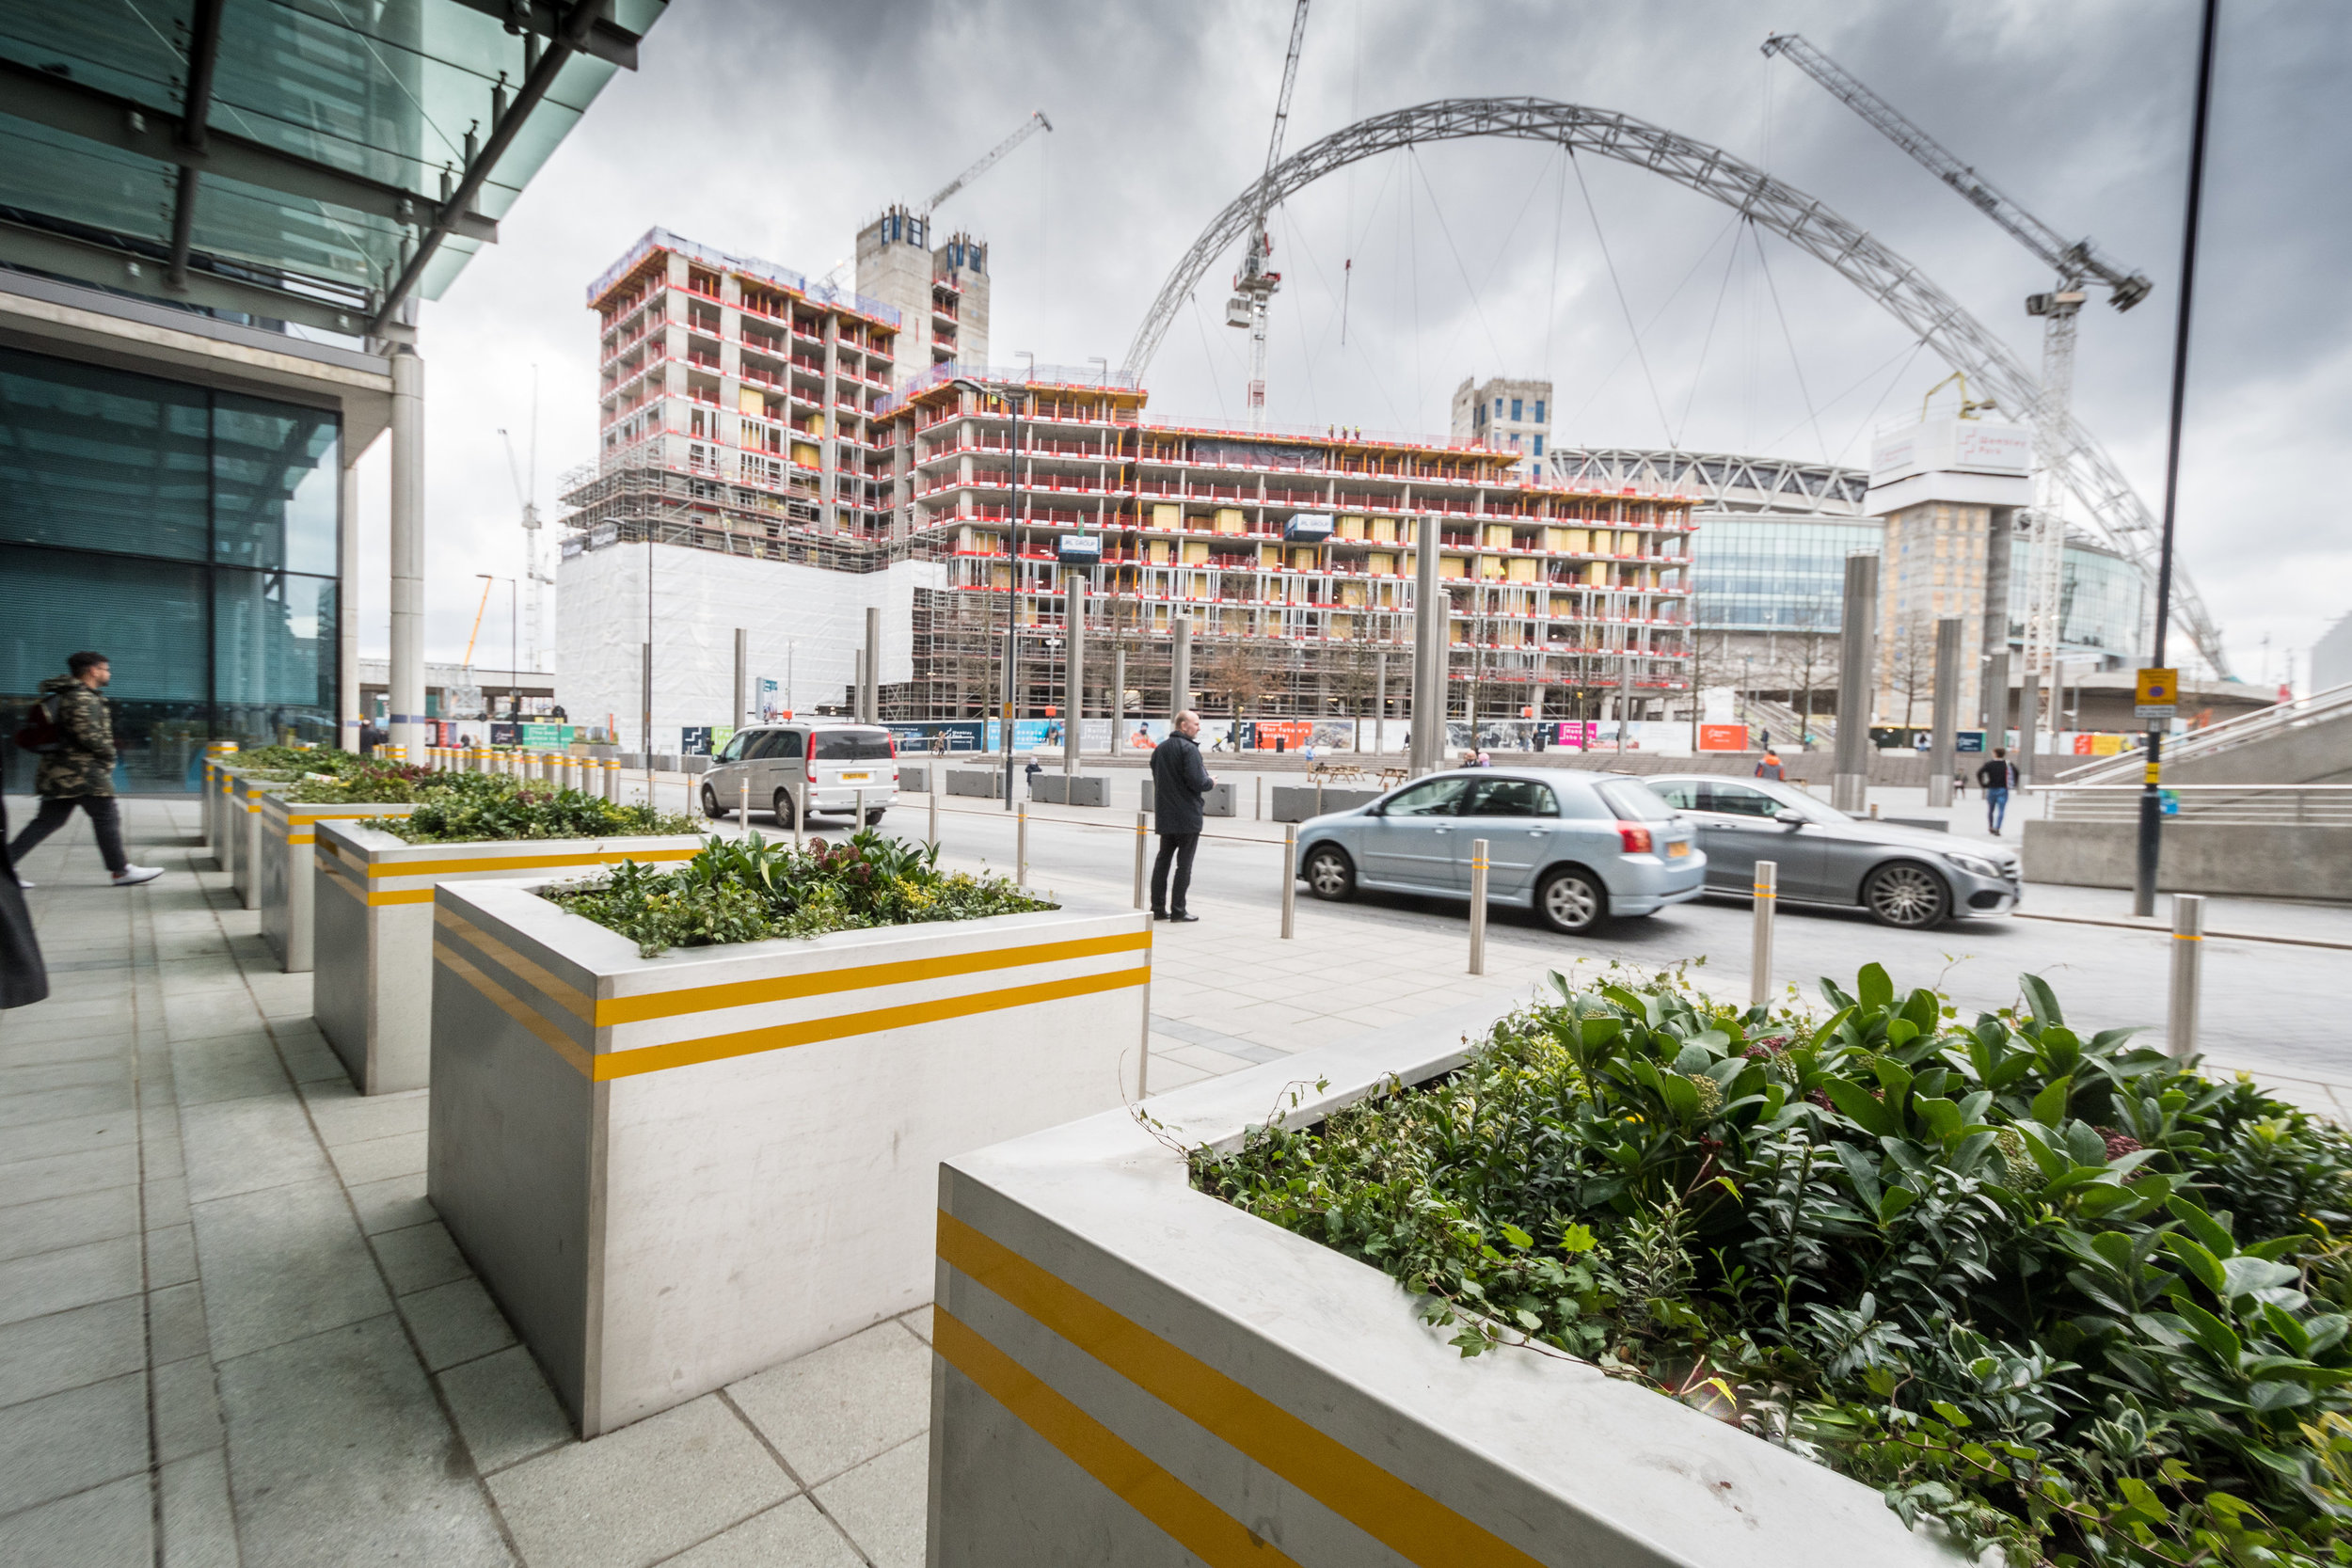 A Derbyshire security products company has helped protect staff and visitors to one of London's most prominent public buildings after installing a host of street planters in the shadow of Wembley Stadium's giant arch: Penguin PR: public relations, communications and media